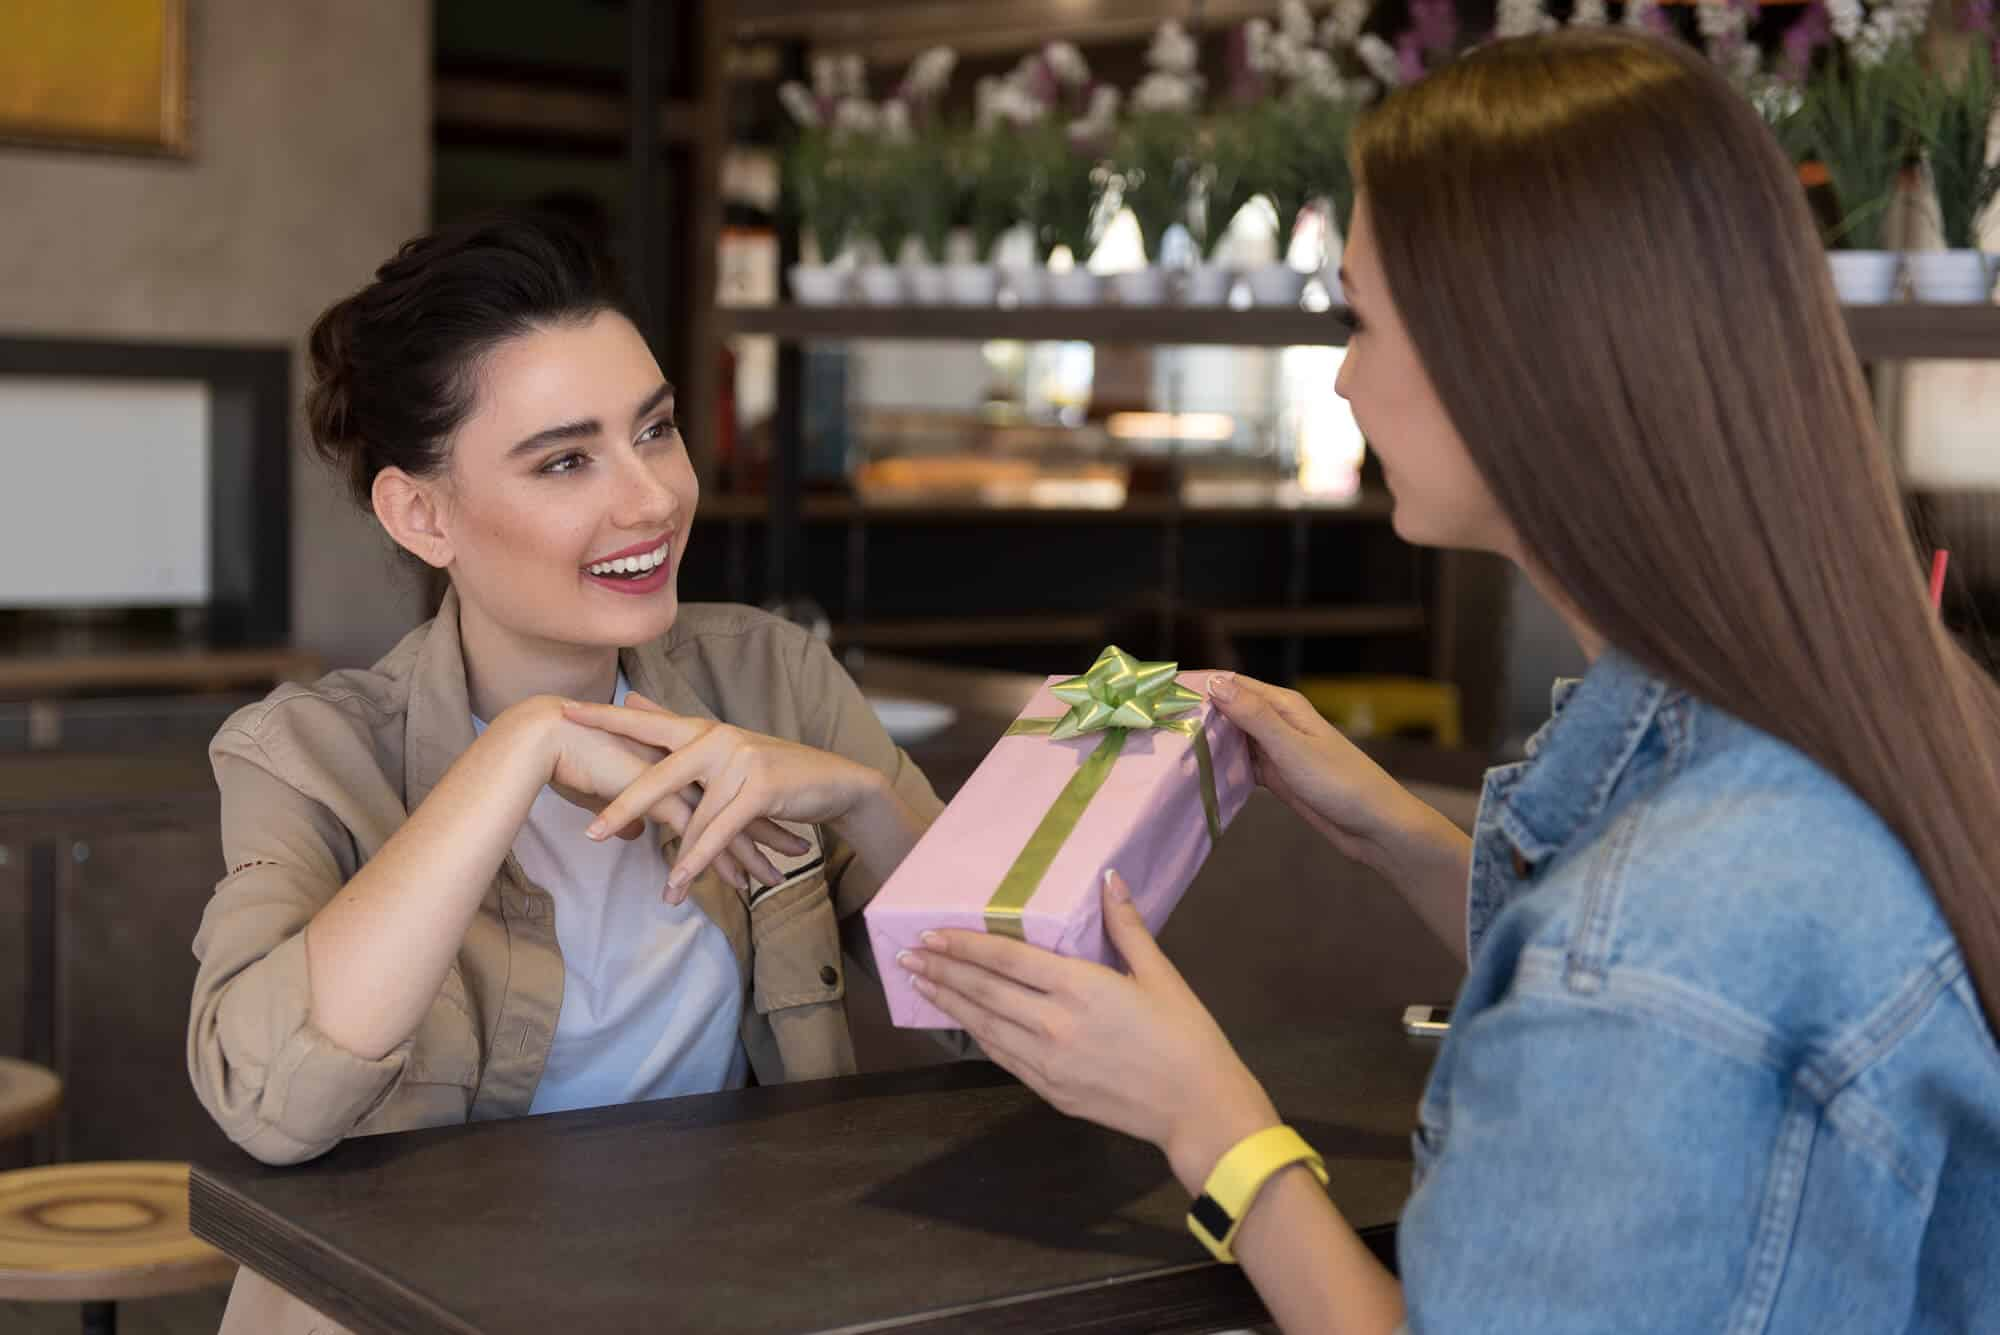 Best friends giving sentimental gifts to each other at a table